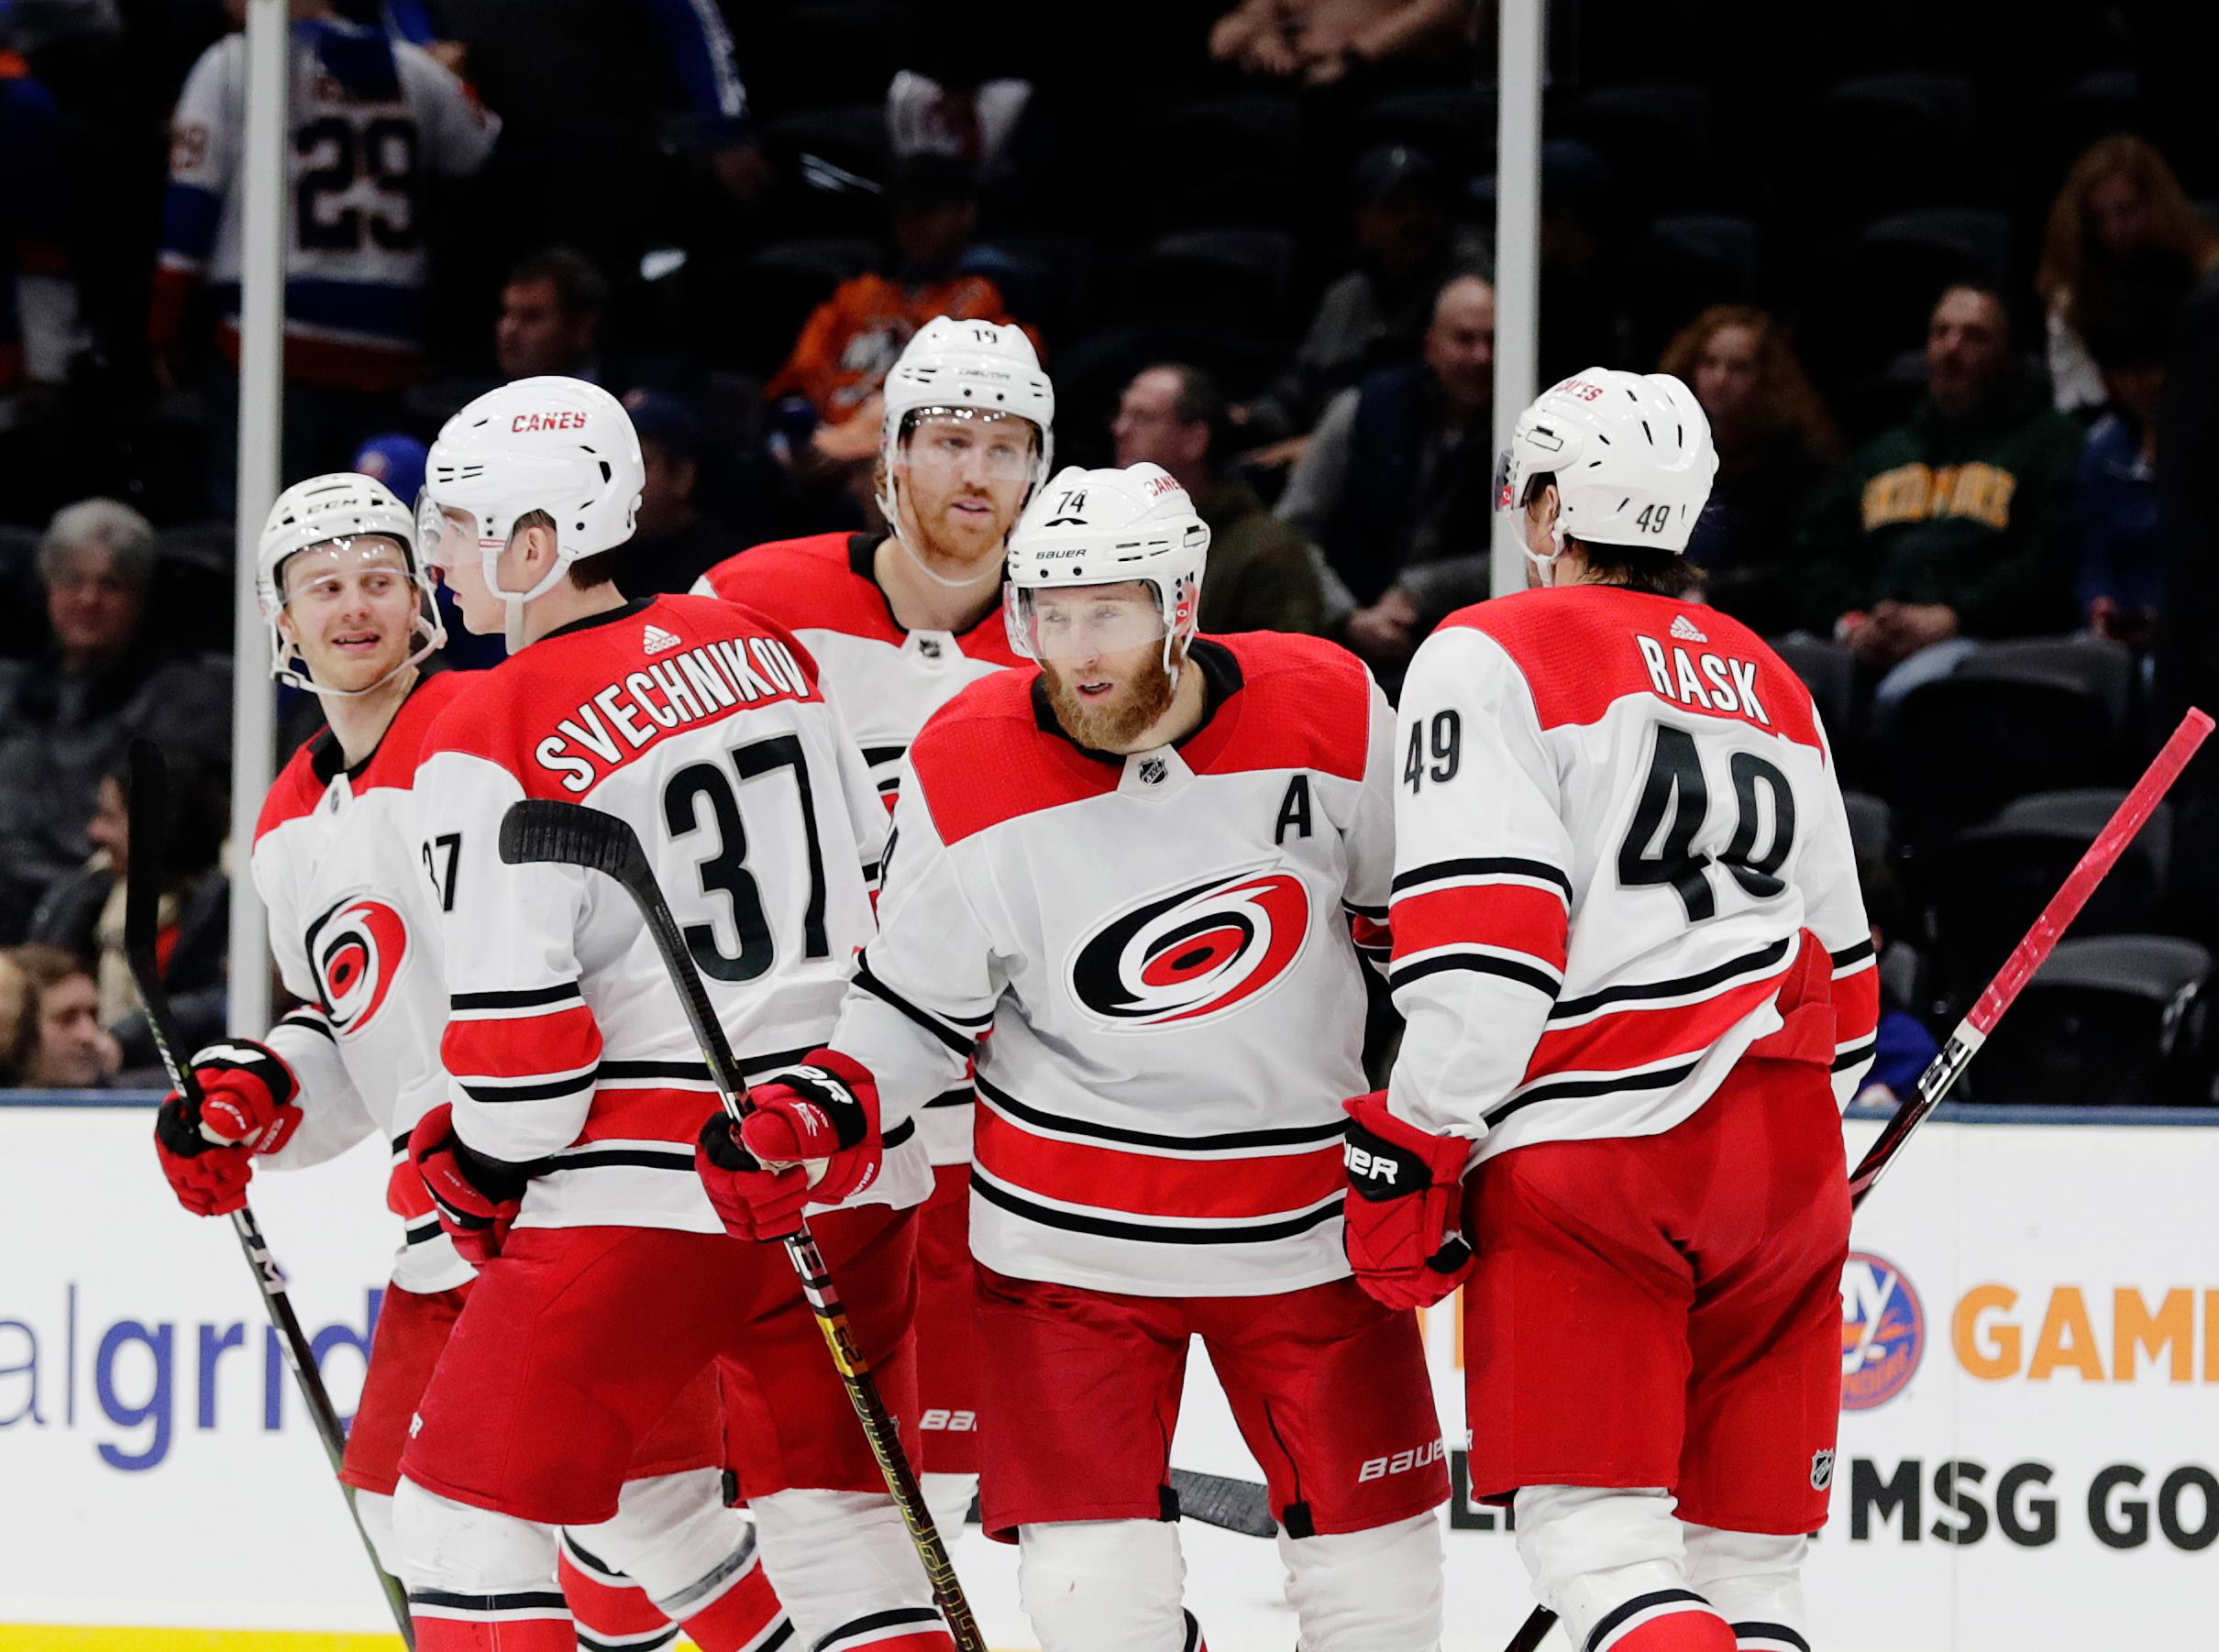 Carolina Hurricanes' Jaccob Slavin, center, celebrates with teammates after scoring a goal during the third period of an NHL hockey game against the New York Islanders Tuesday, Jan. 8, 2019, in New York. The Hurricanes won 4-3. (AP Photo/Frank Franklin II)